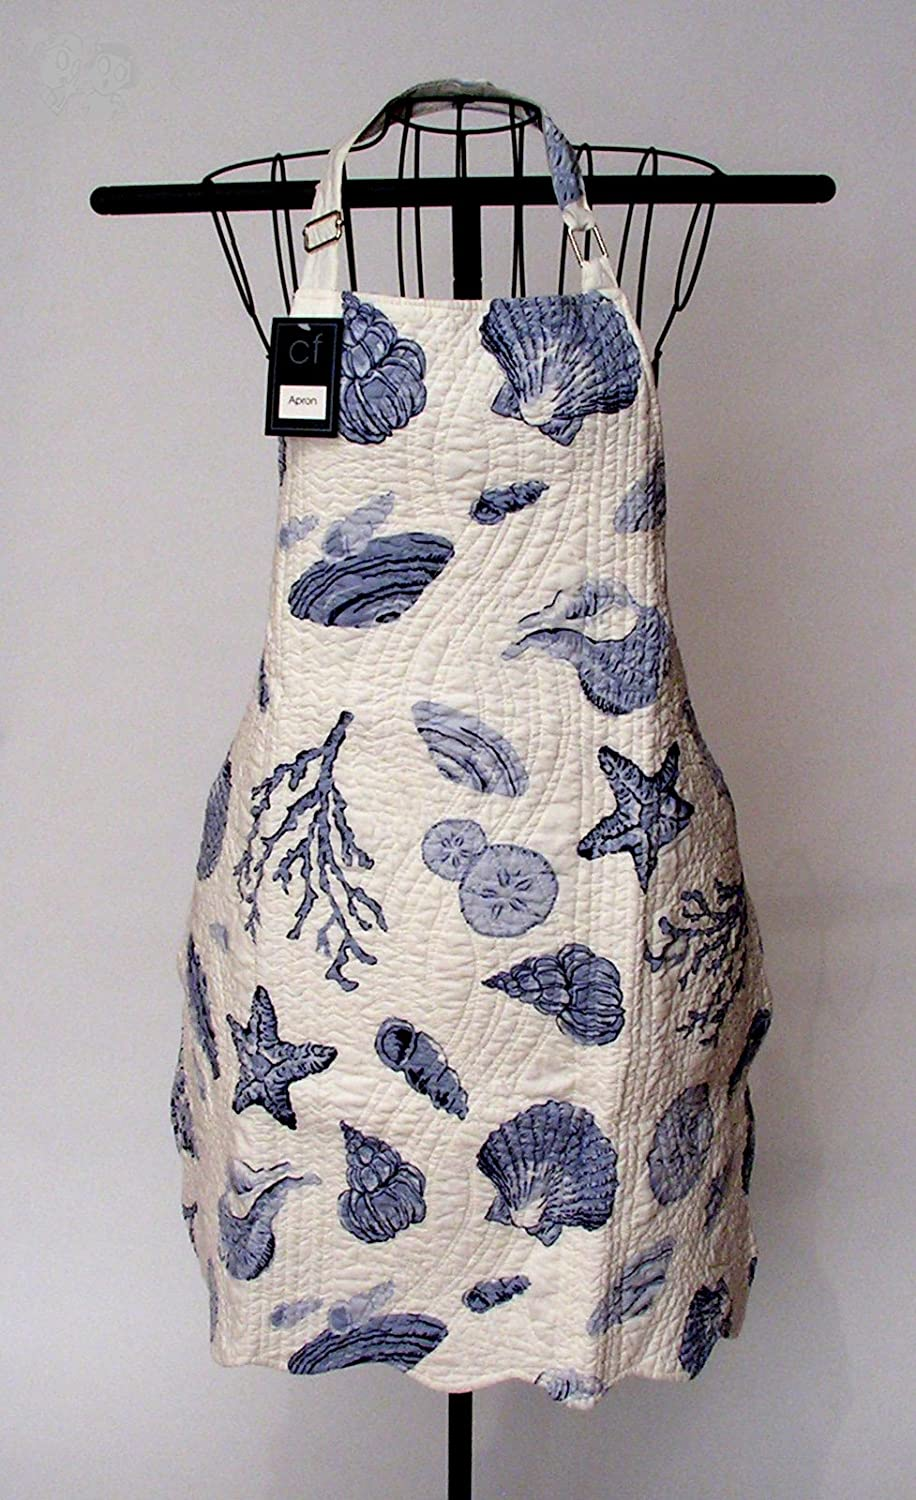 C&F Home 29x31 Adult Quilted Reversible Apron, Natural Shells